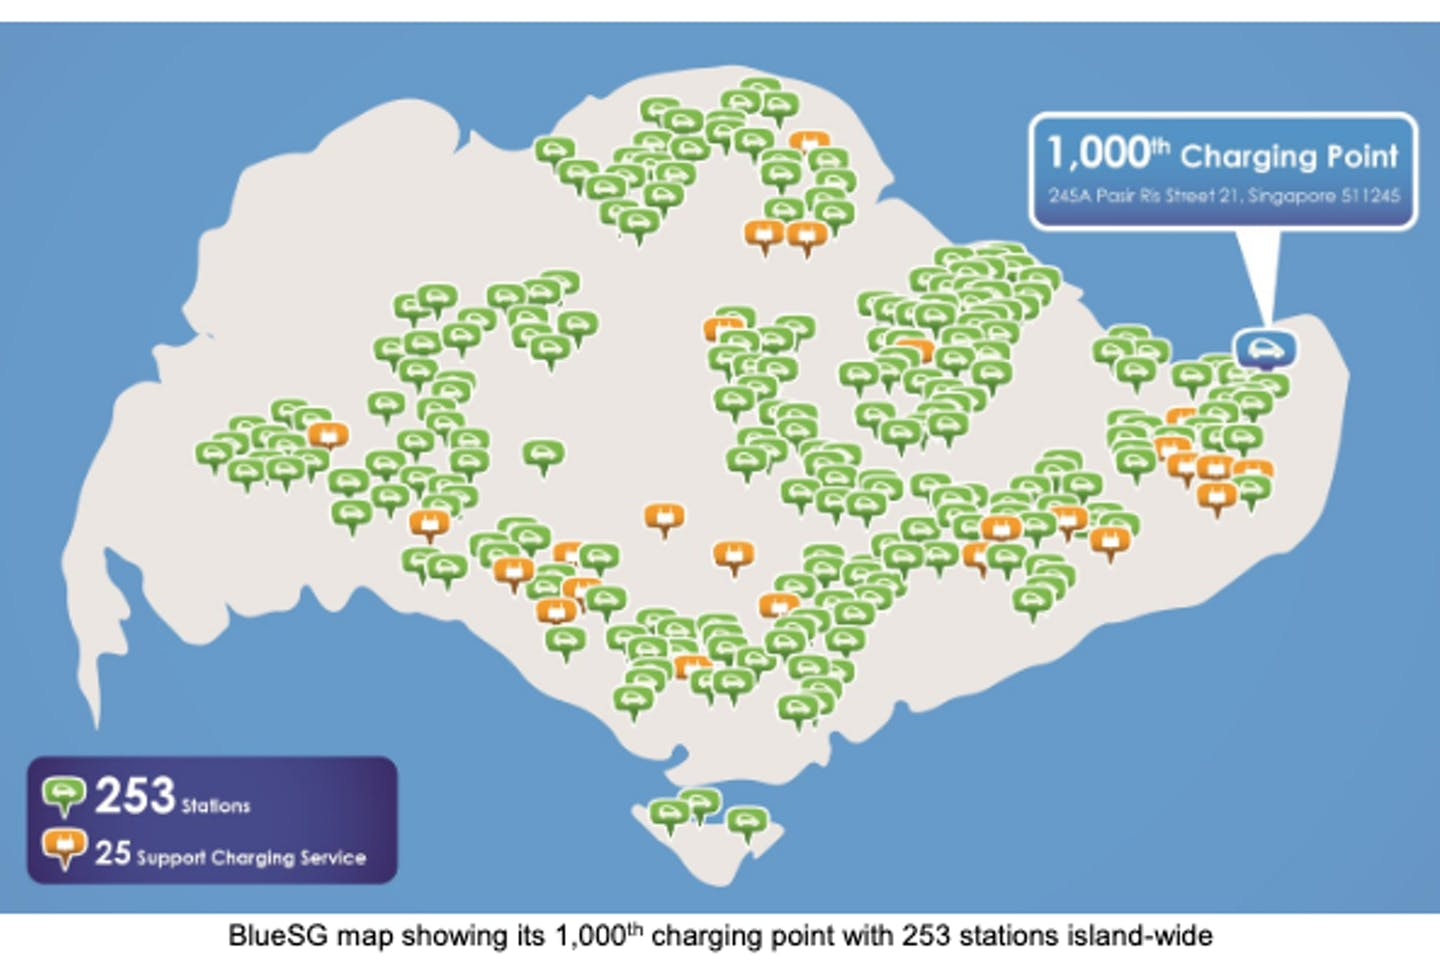 BlueSG's Electric Vehicle Car-Sharing announced the opening of its 1,000th charging point, across 253 charging stations island-wide